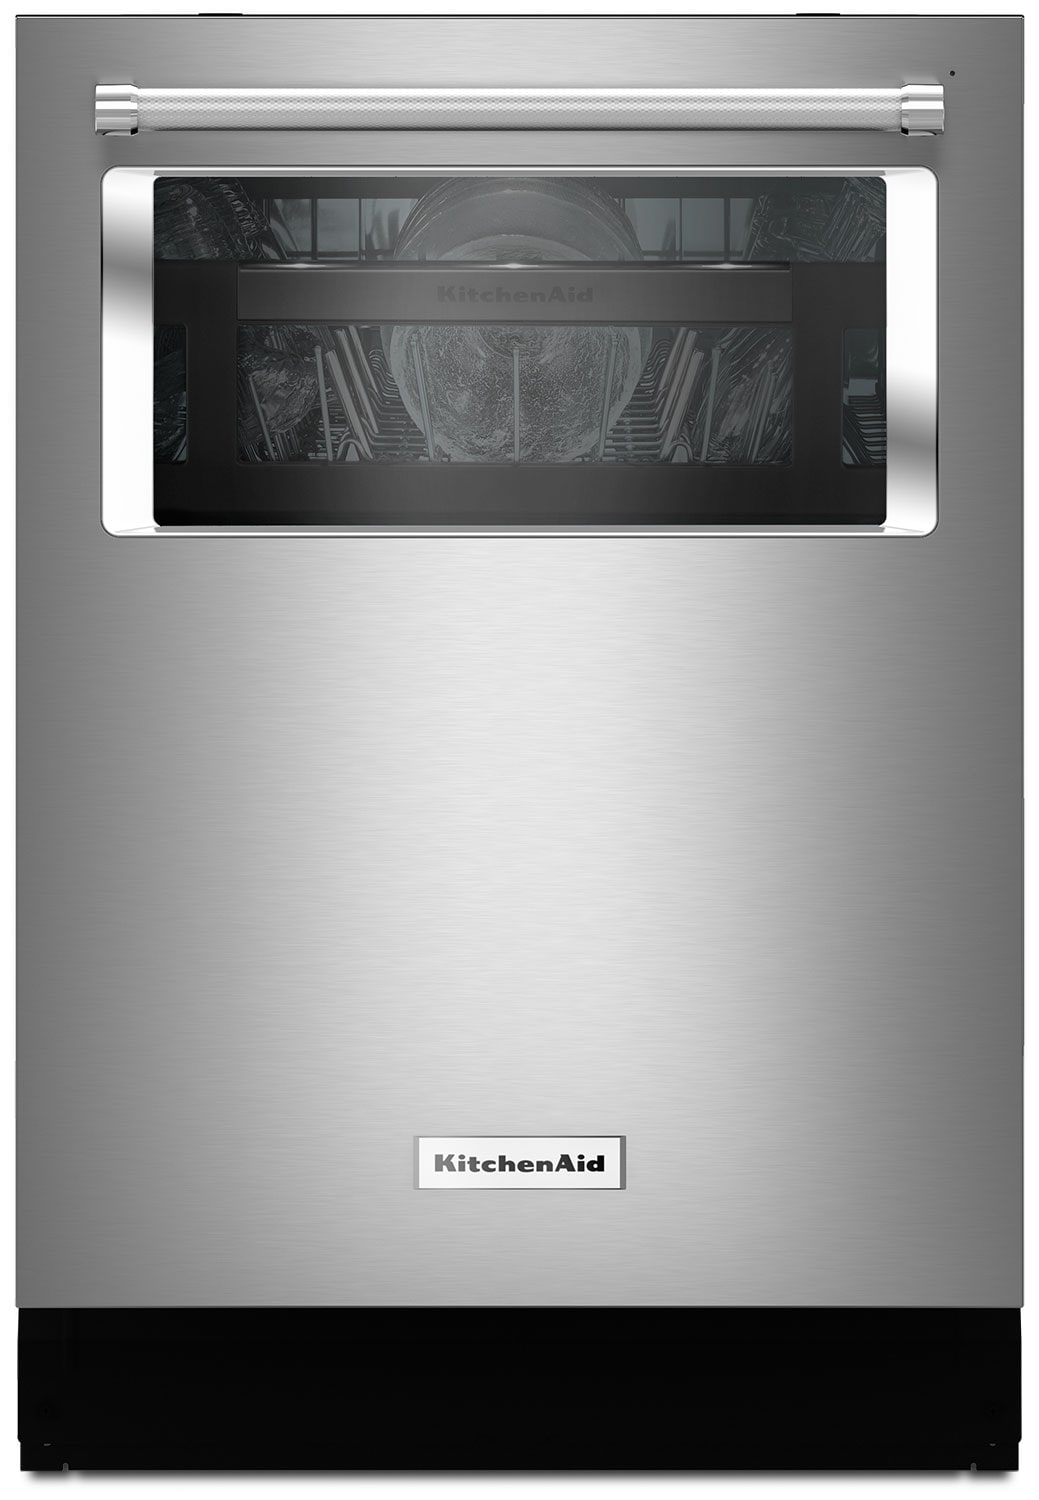 "Clean-Up - KitchenAid 24"" Dishwasher with Window and Lighted Interior - Stainless Steel"